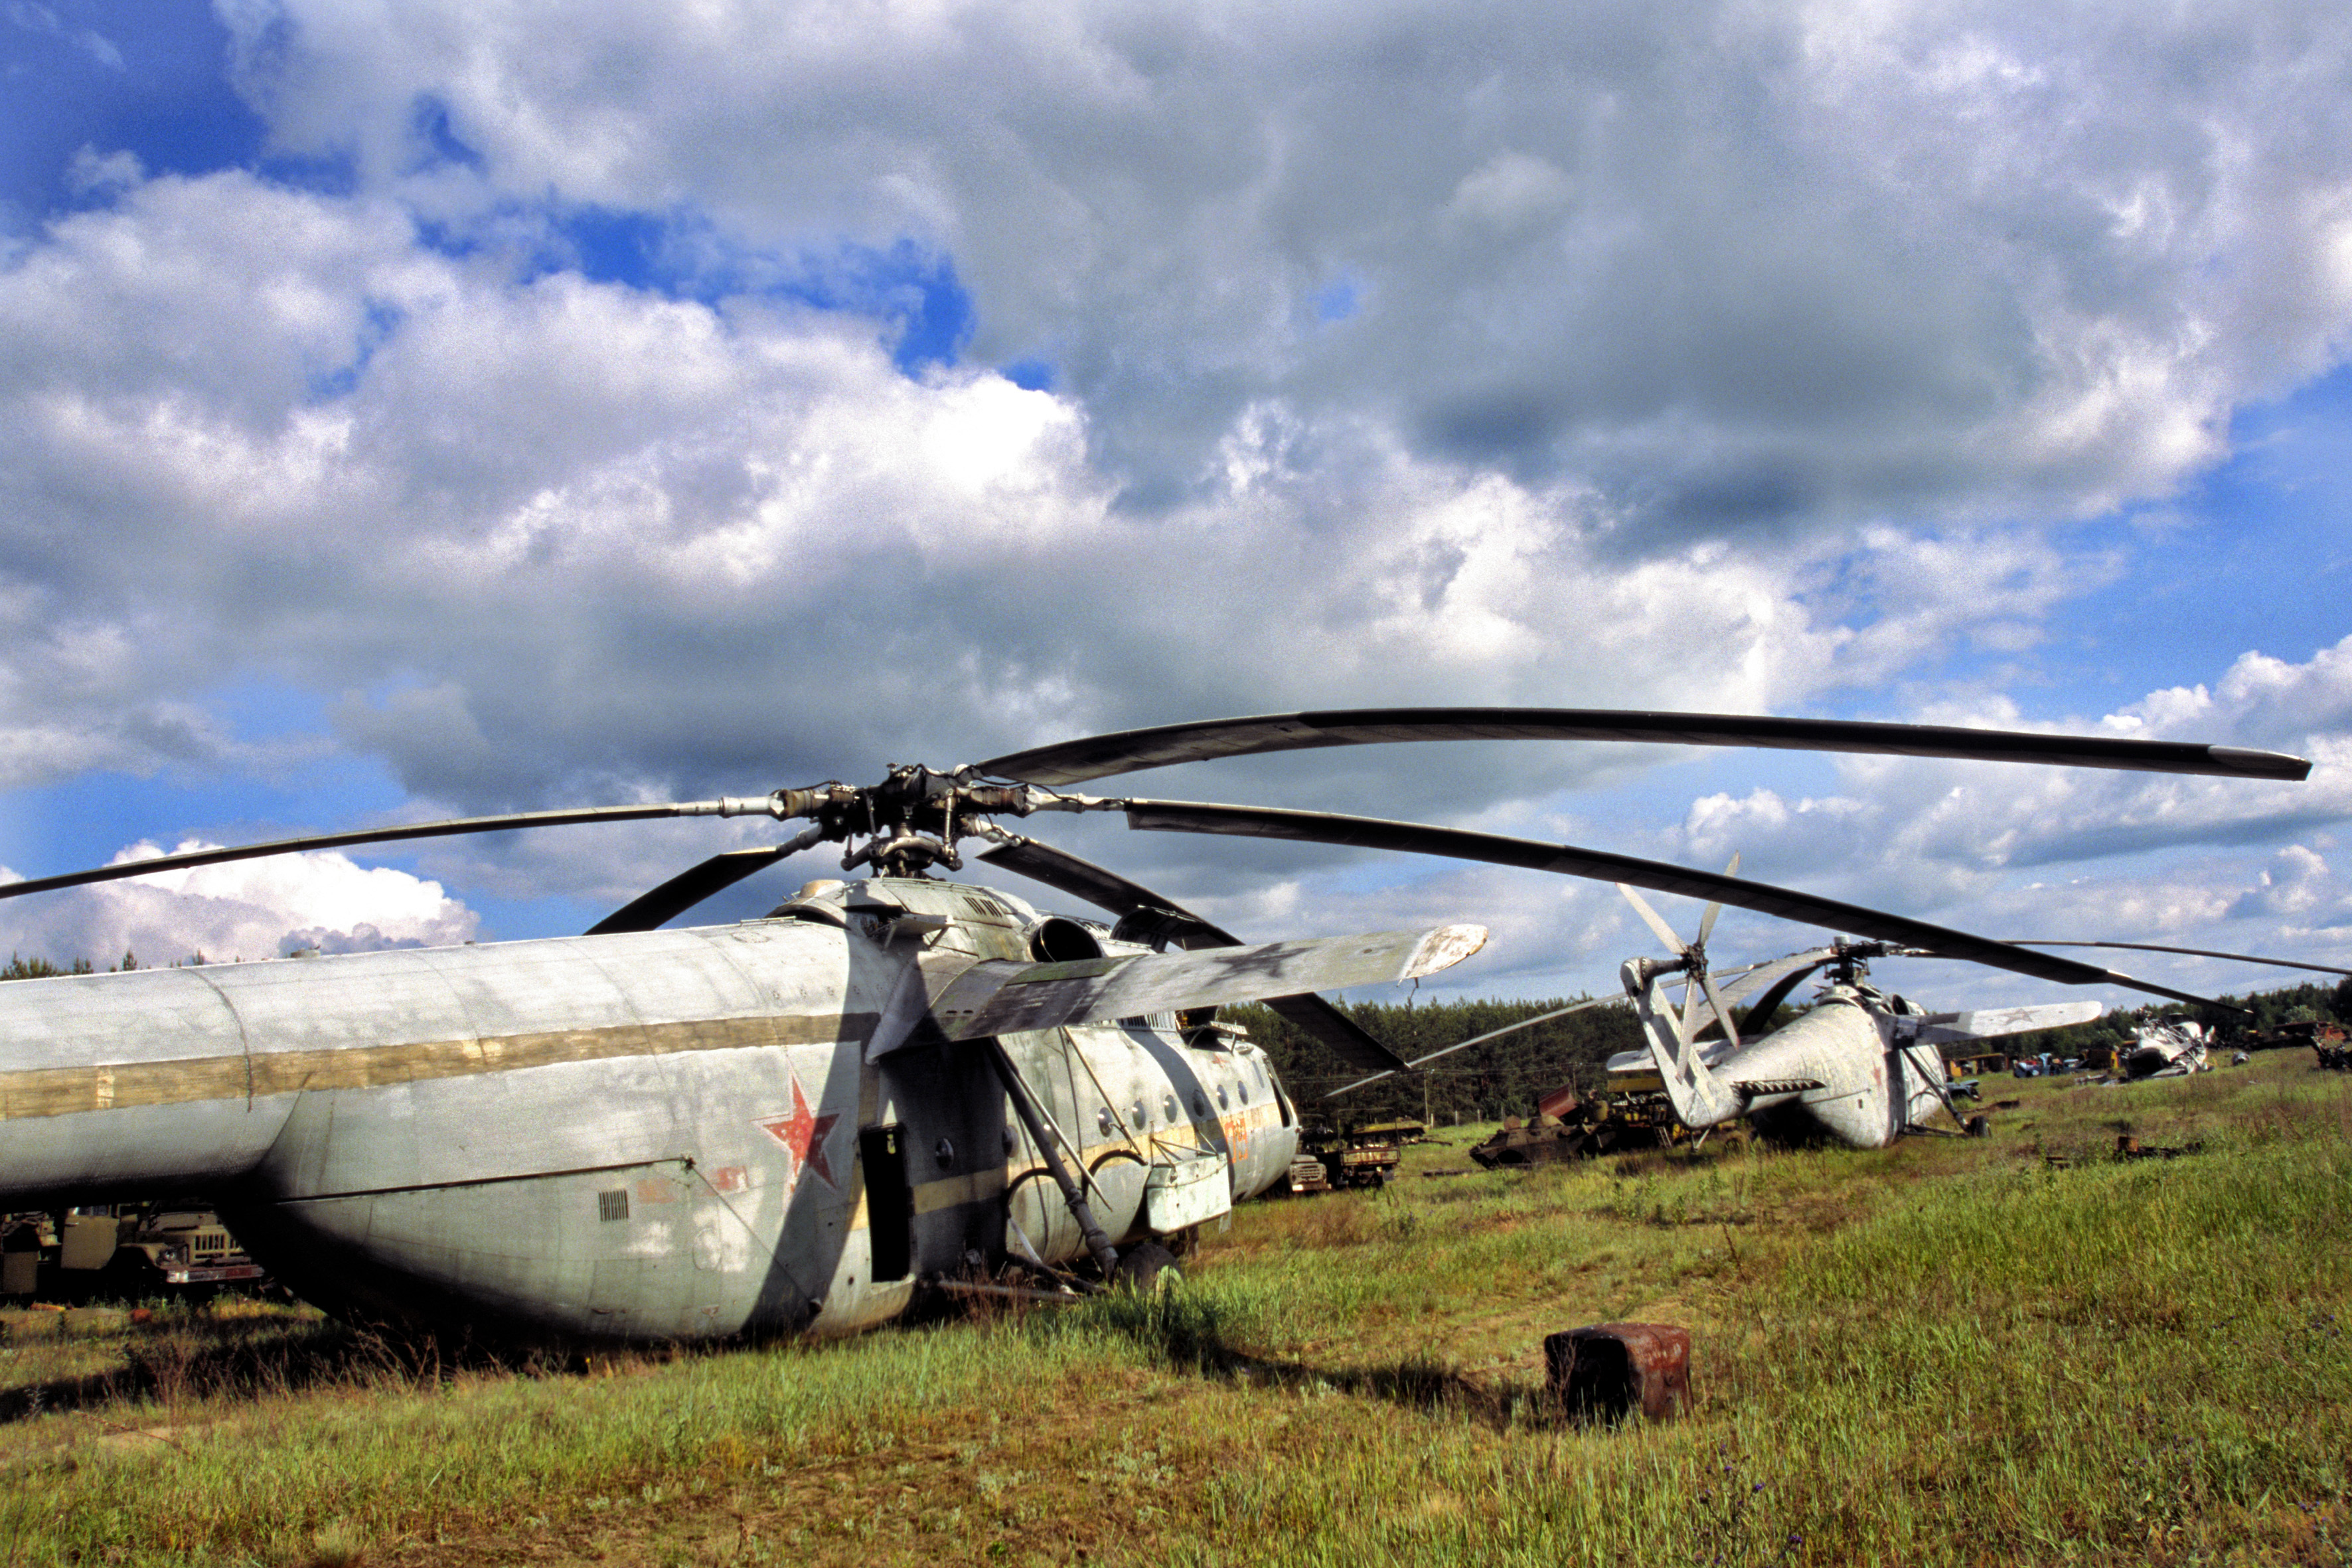 Helicopters Pripyat Chernobyl vehicles HD Wallpaper